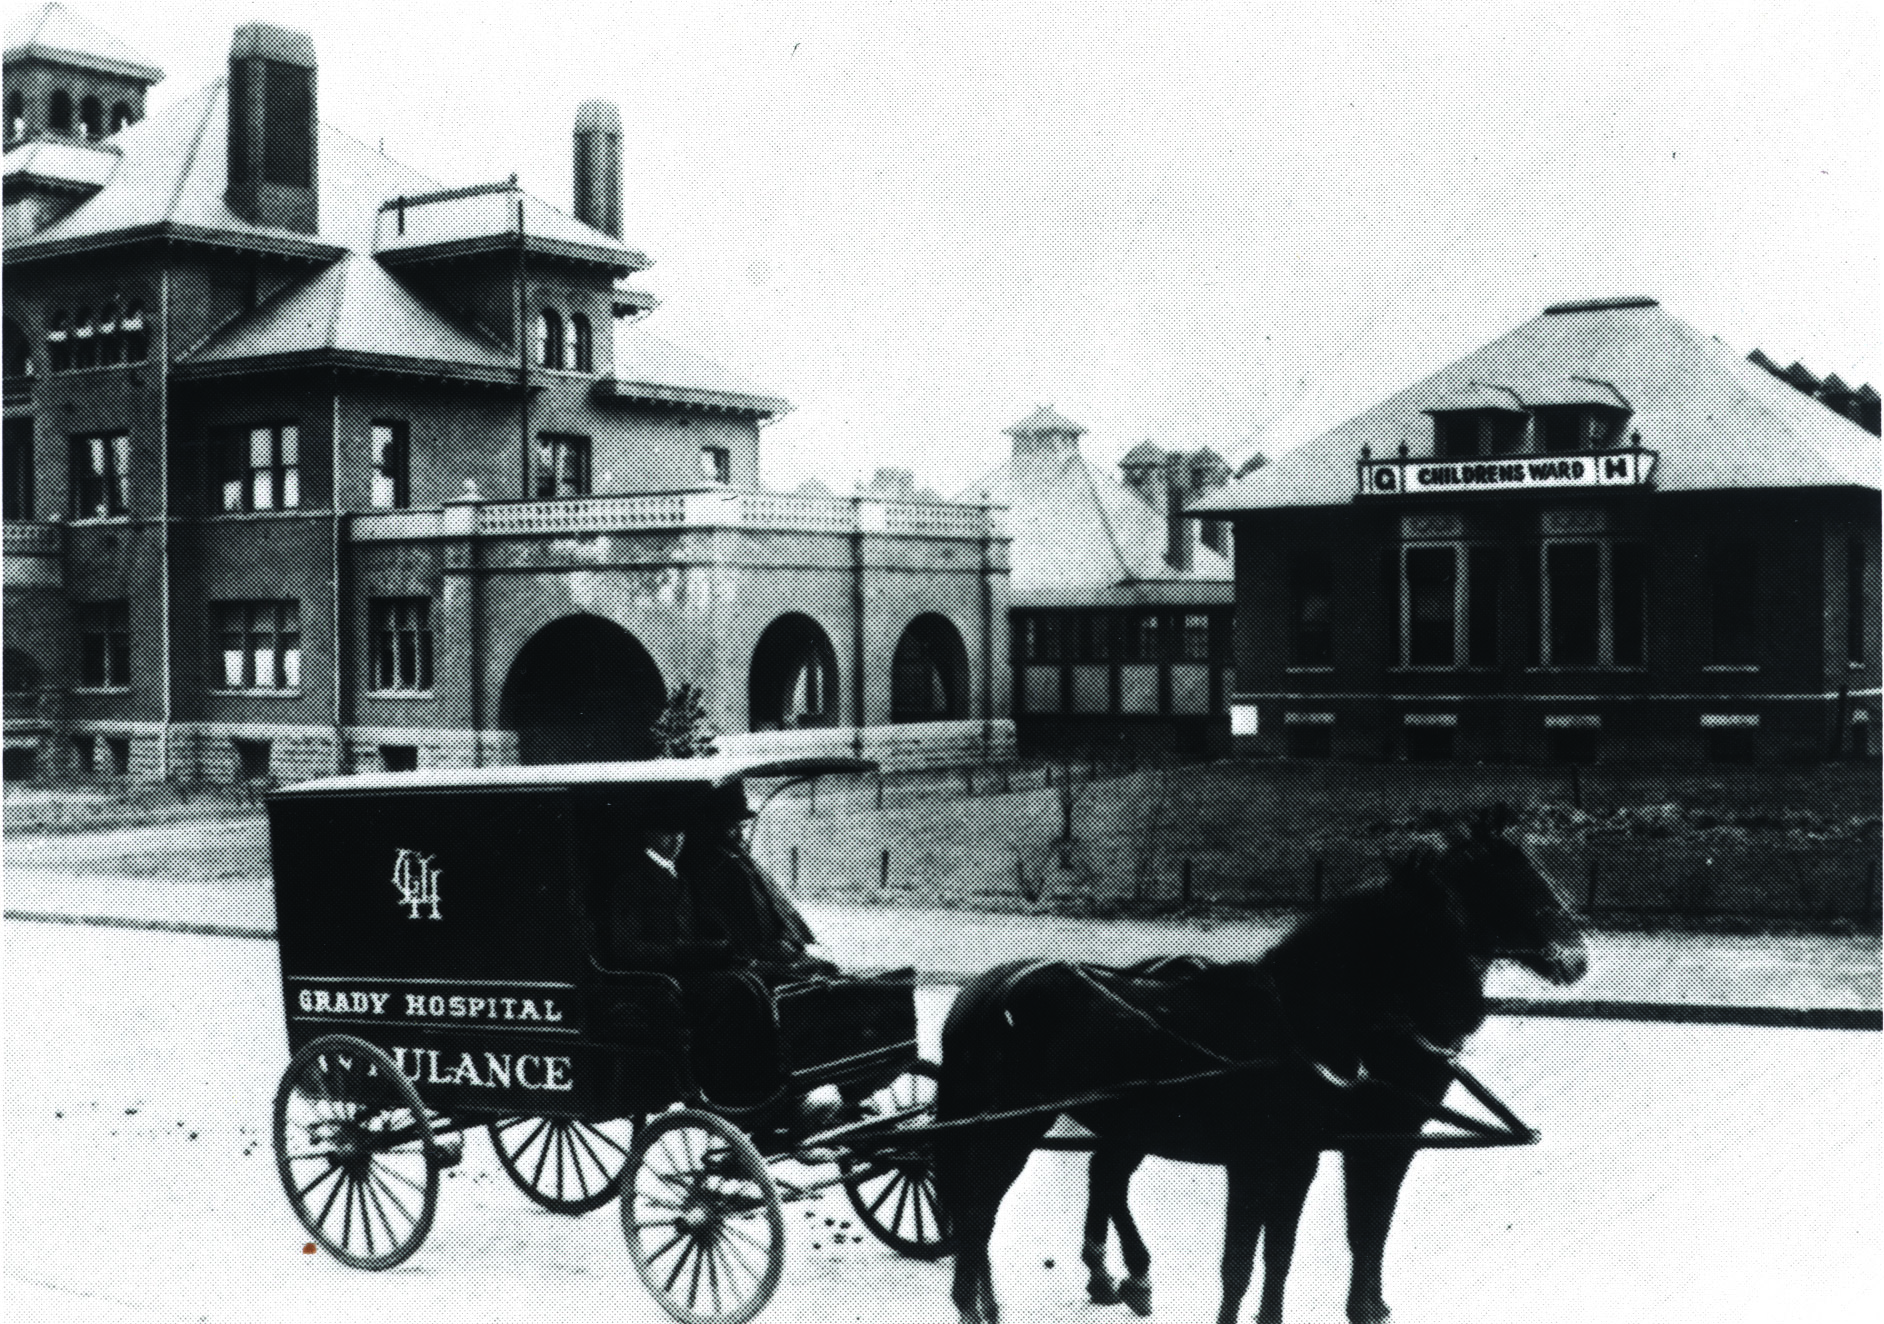 Ambulance outside Grady 1892